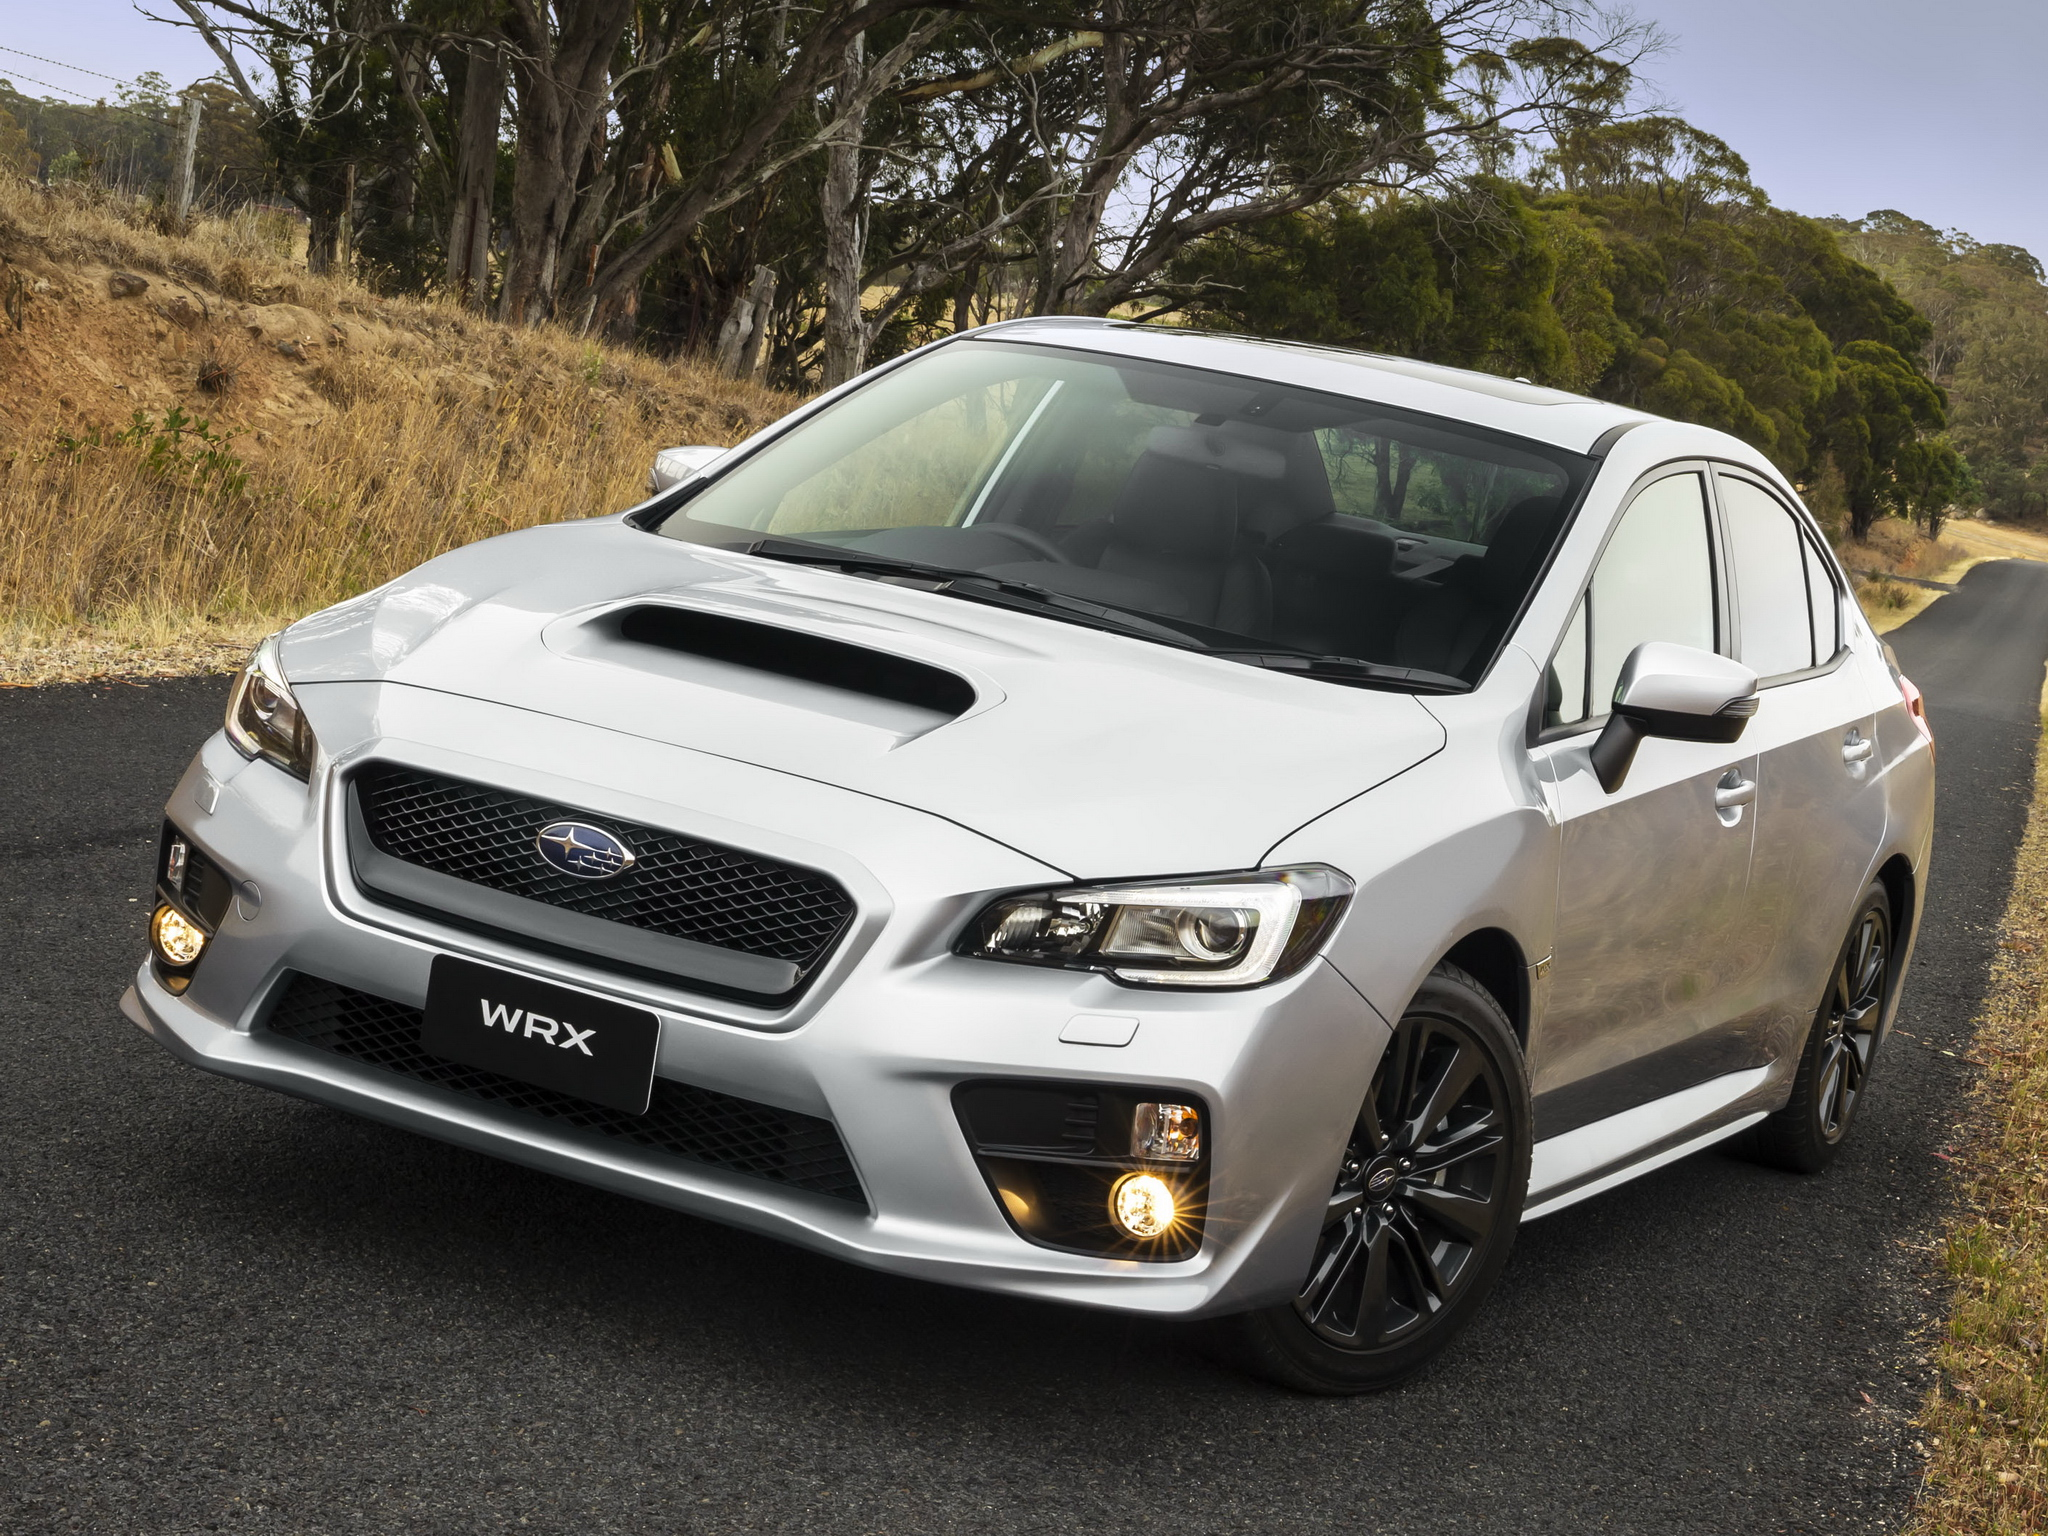 2015-subaru-wrx-sells-almost-as-well-as-the-forester-australia_2.jpg